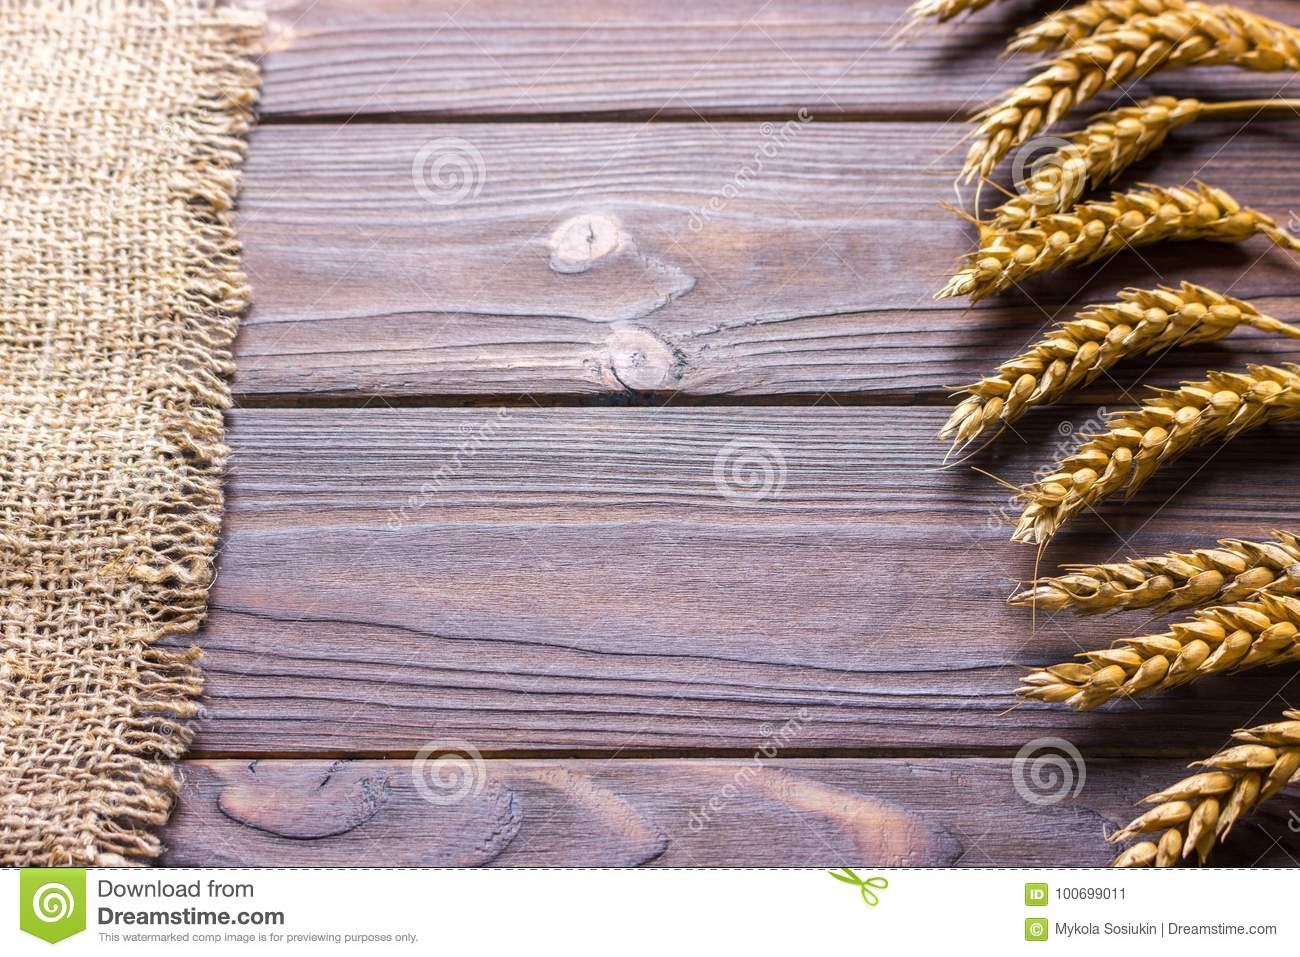 burlap hessian sacking on wooden background Harvest concept